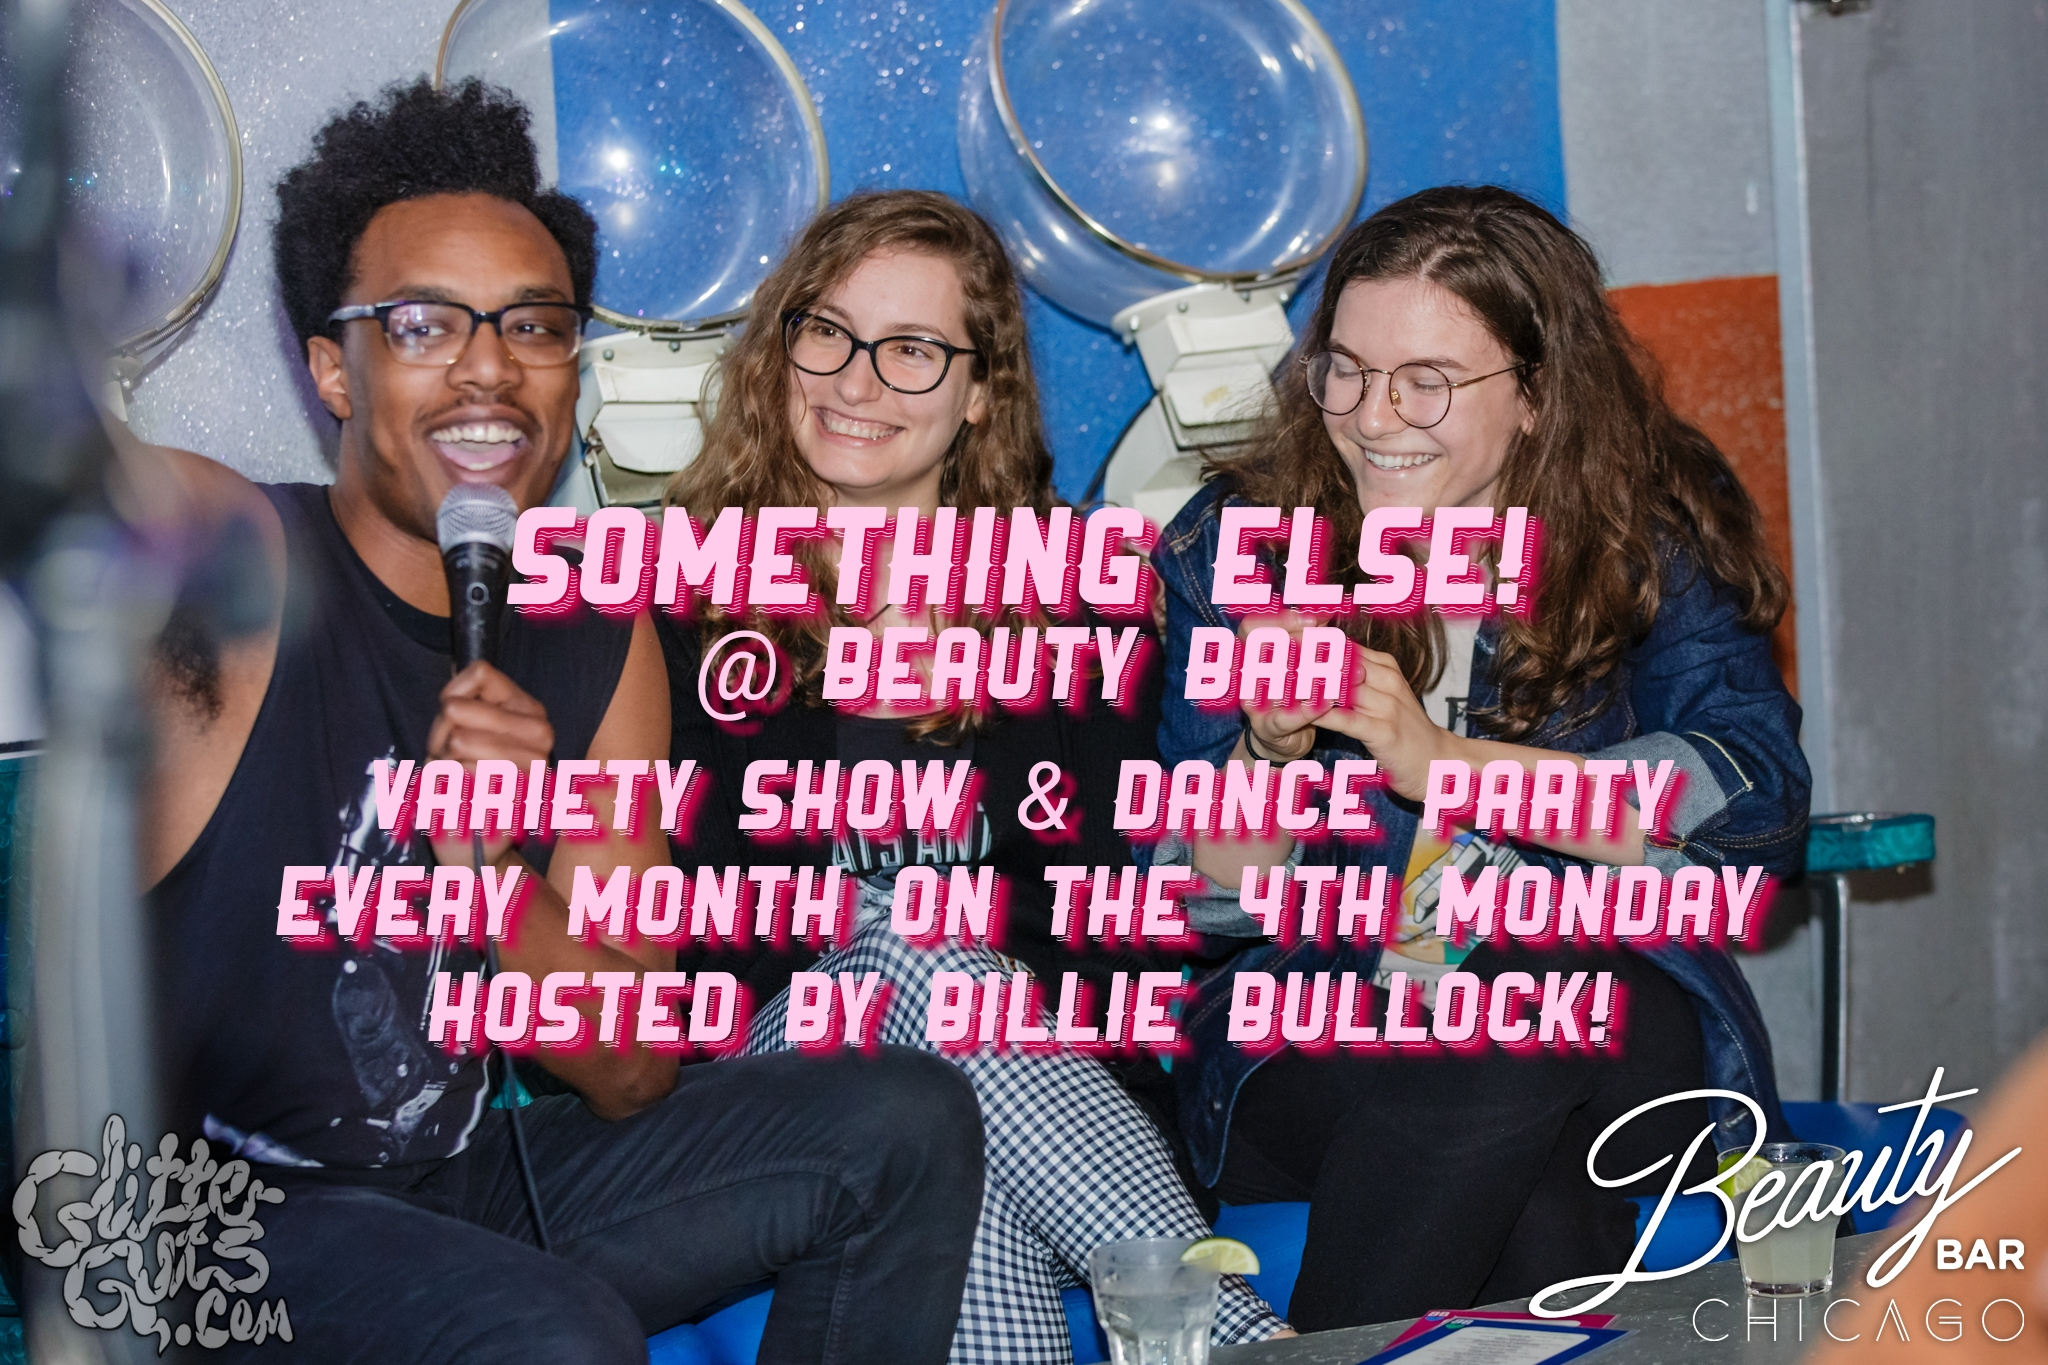 Visit the Something Else! @ Beauty Bar FB page here